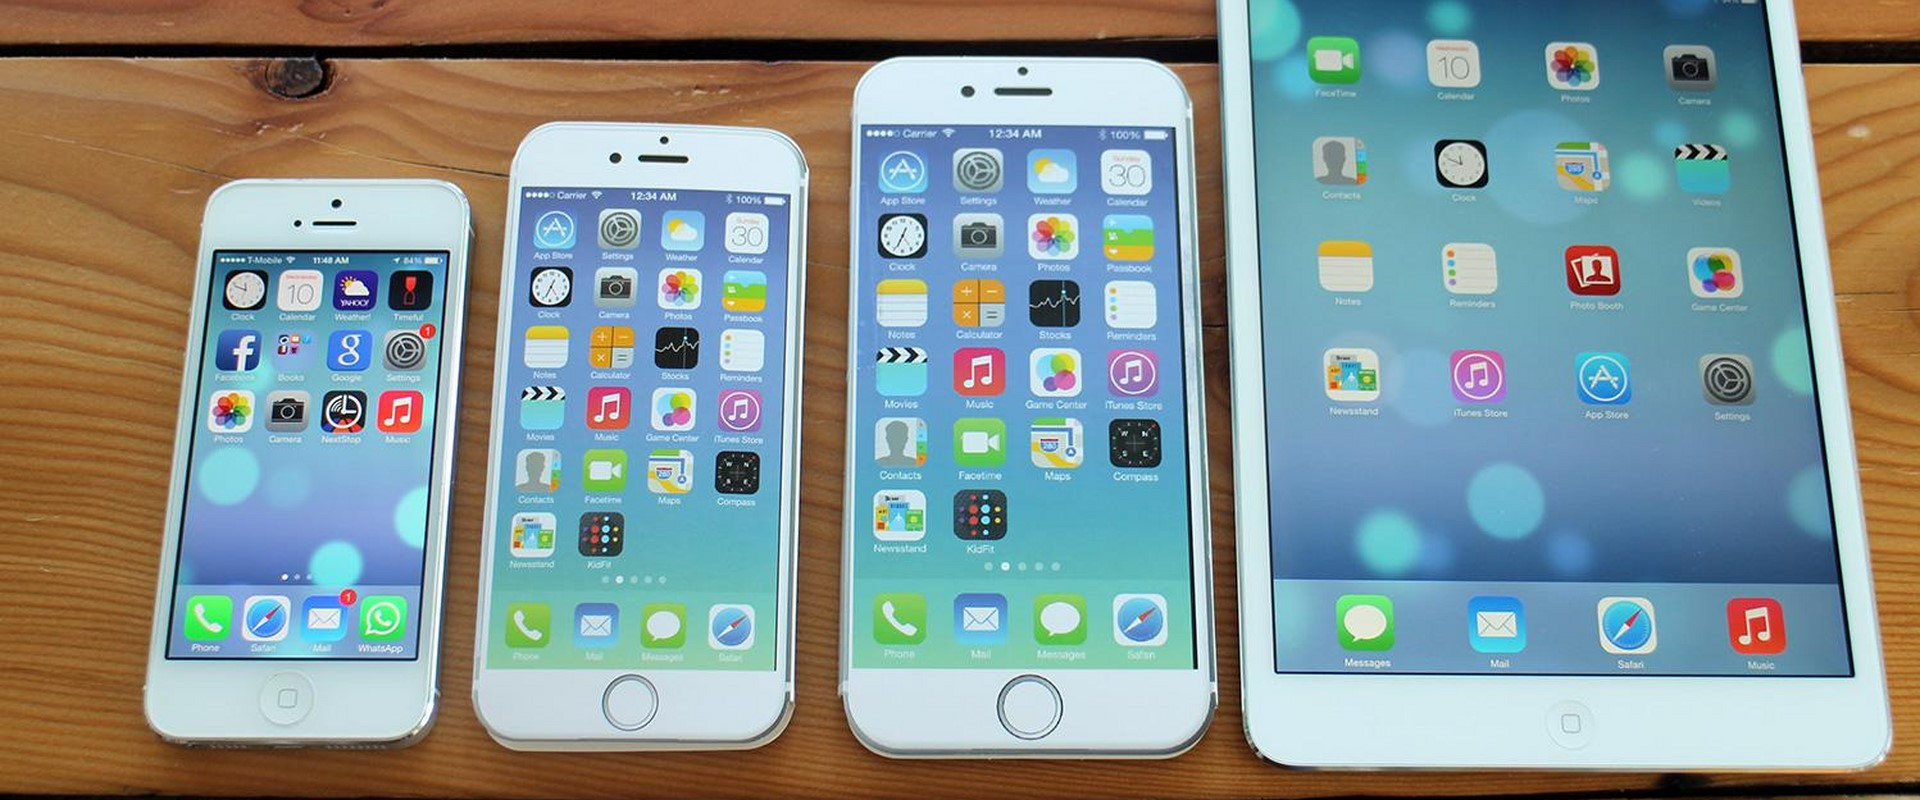 iPhone-5-vs.-iPhone-6-vs.-iPhone-6-Plus-vs.-iPad-Mini.jpg